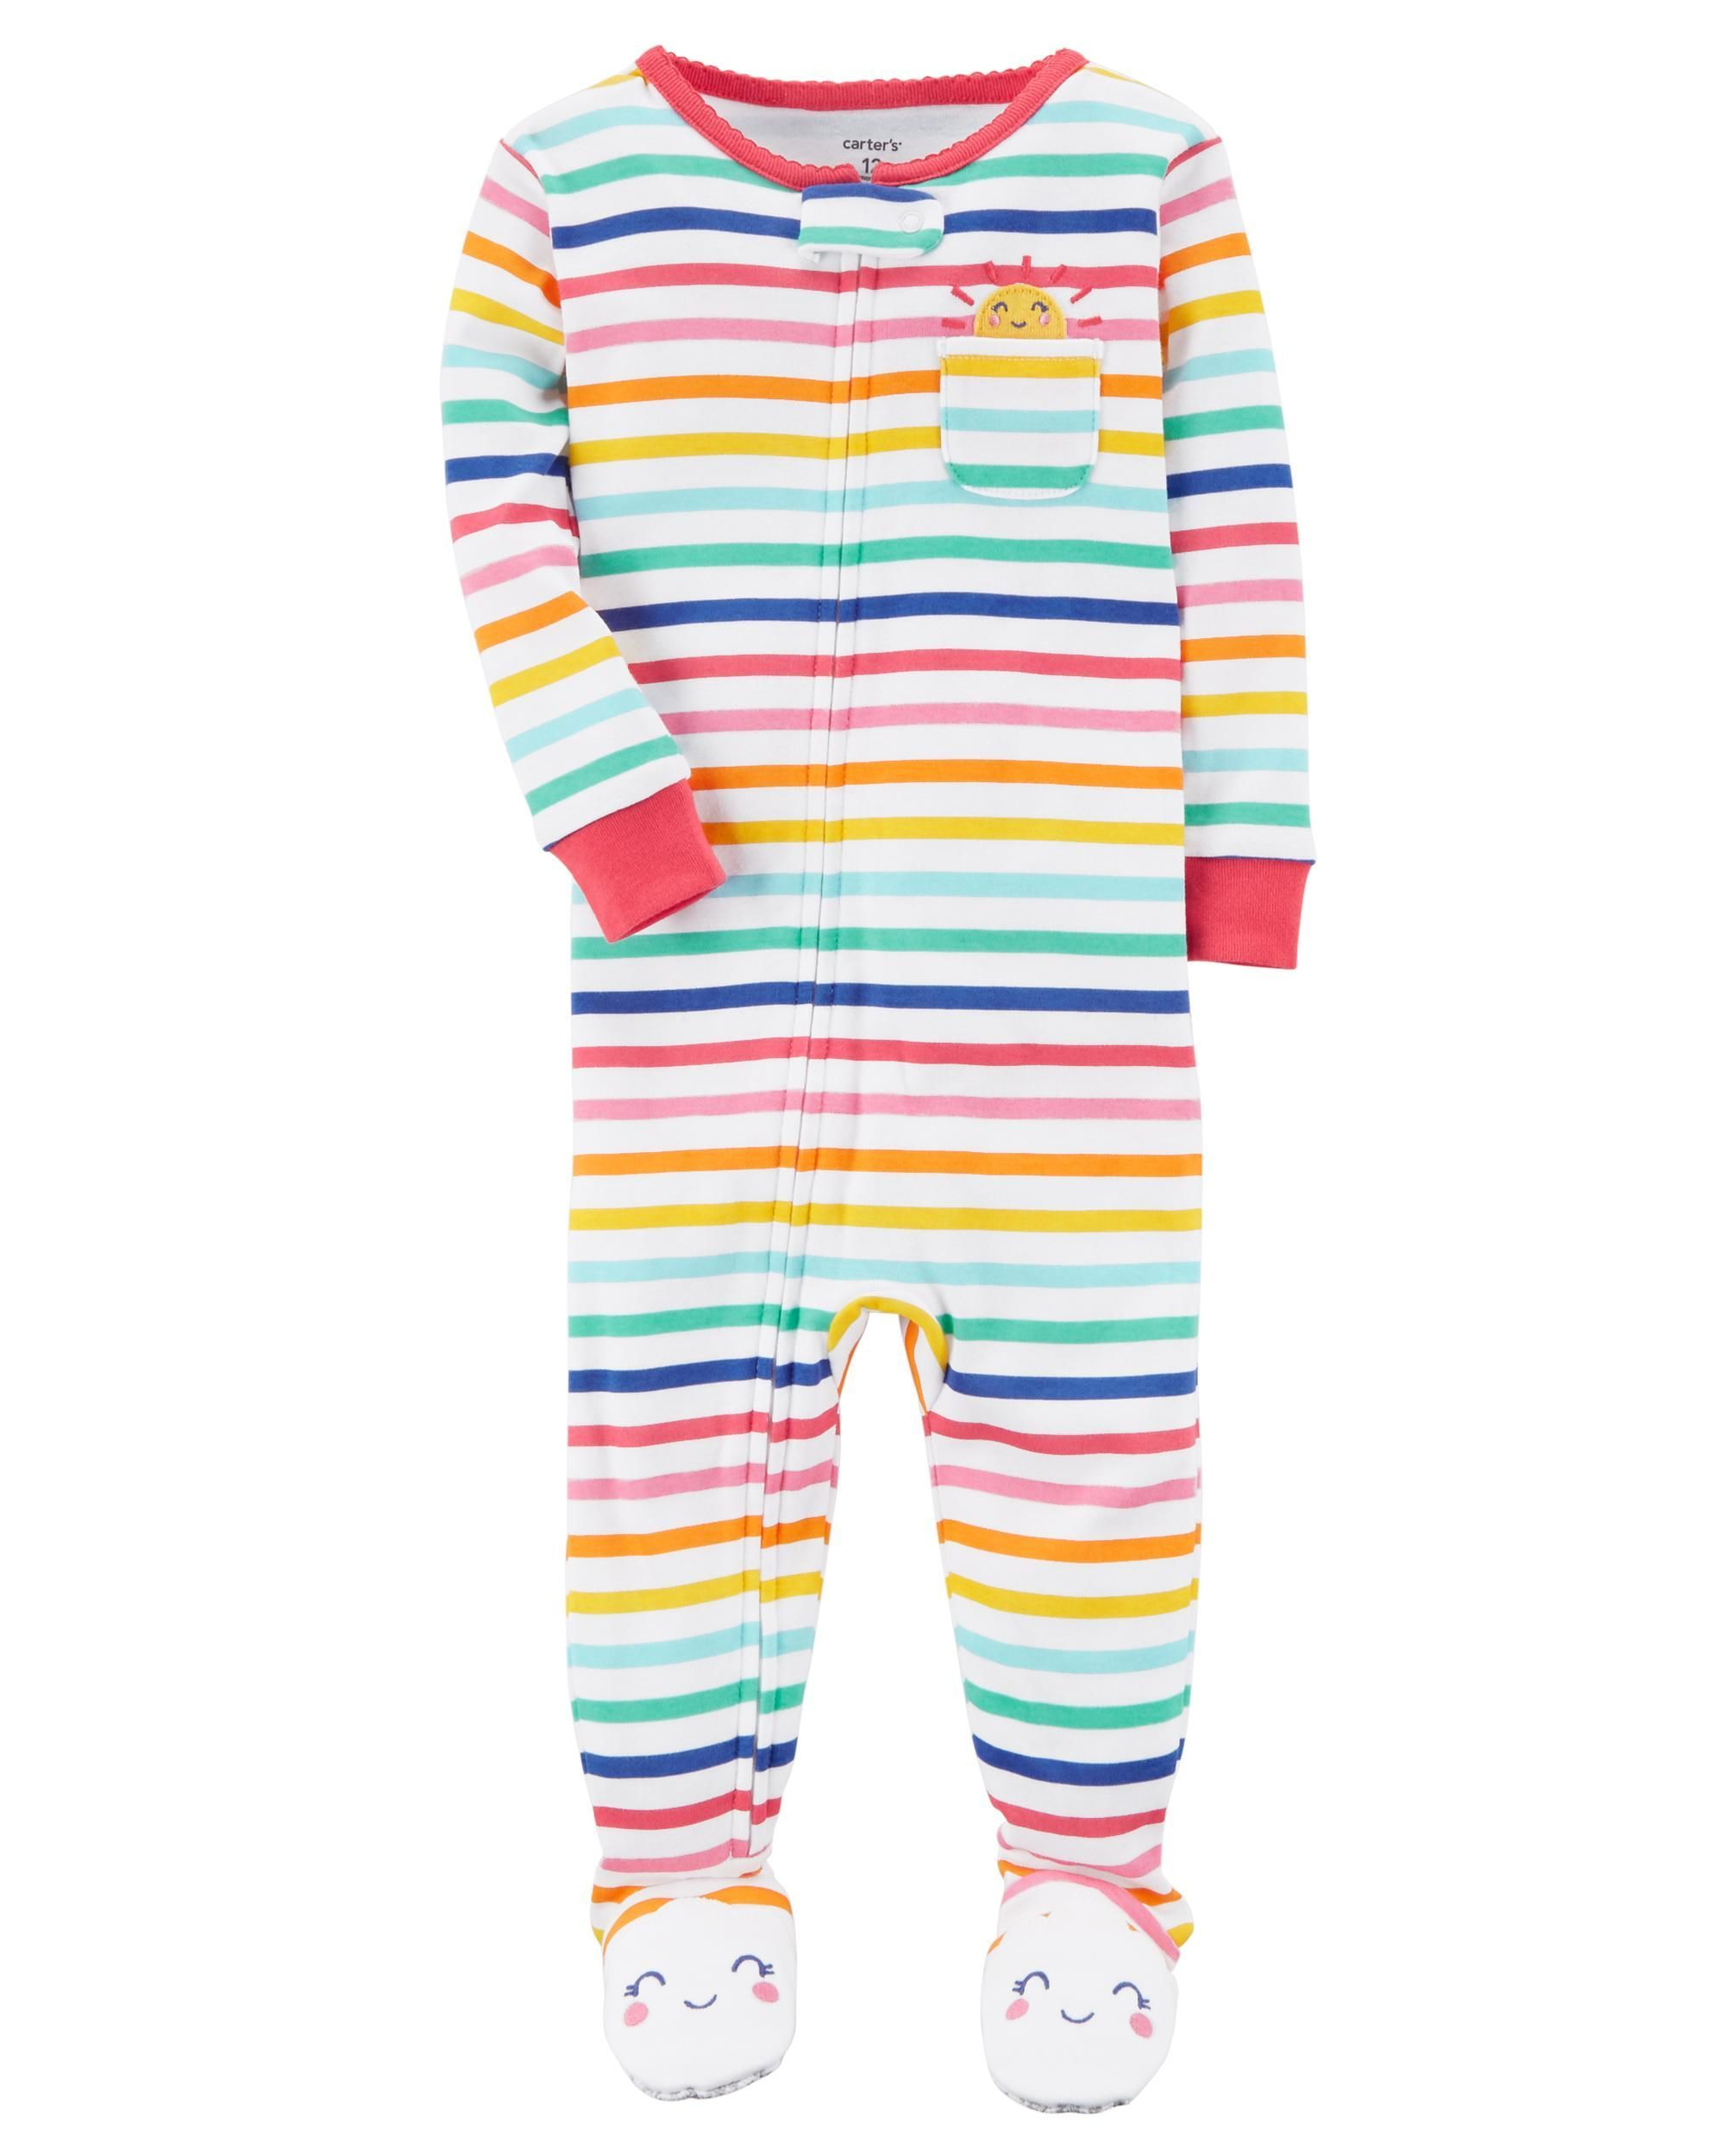 34f53d7d17b9 1-Piece Striped Snug Fit Cotton PJs